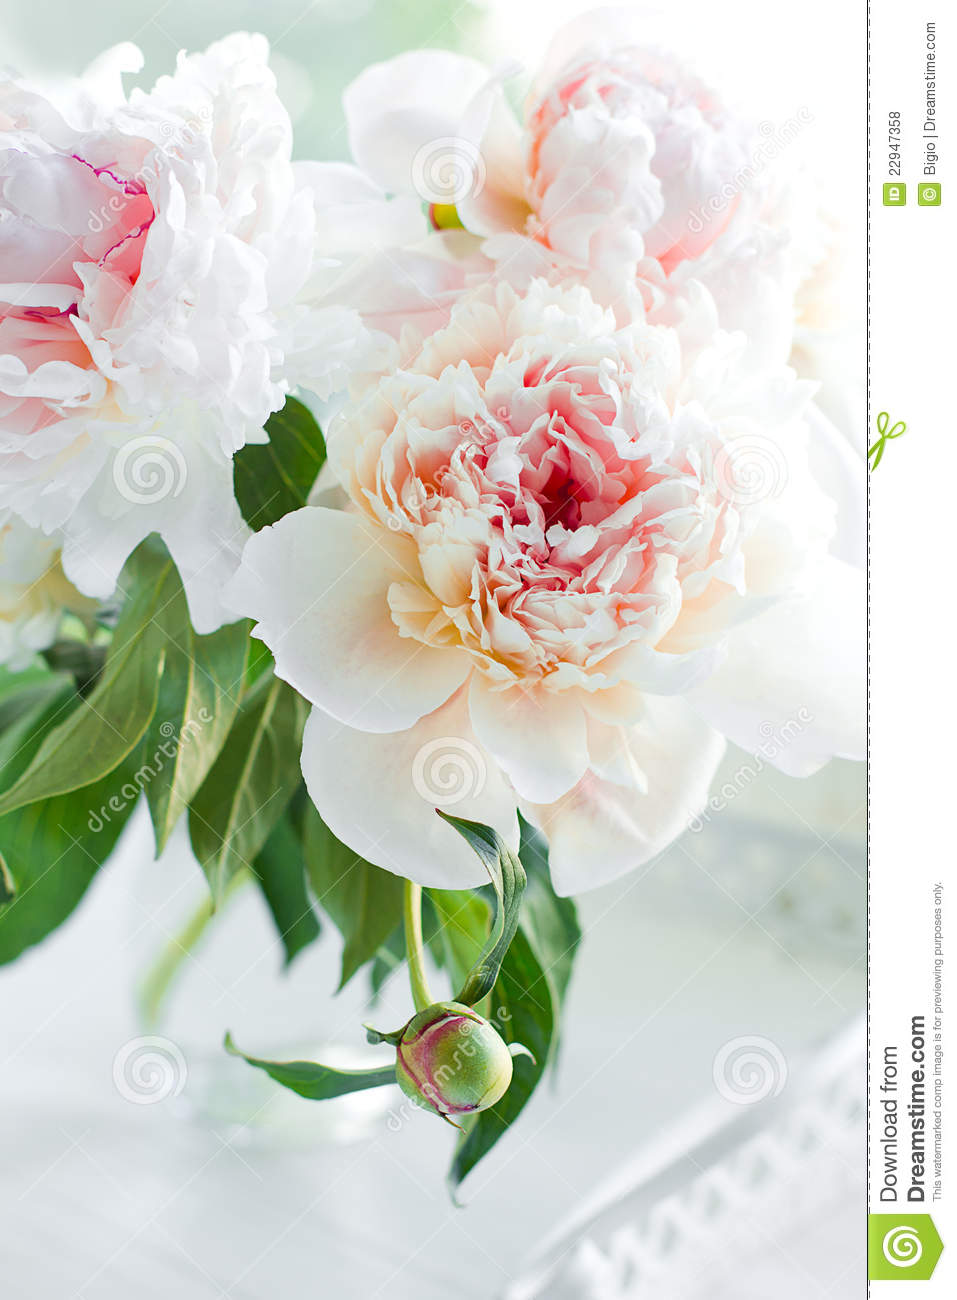 Beautiful White Peony Flowers Stock Photo Image Of Leaf Green